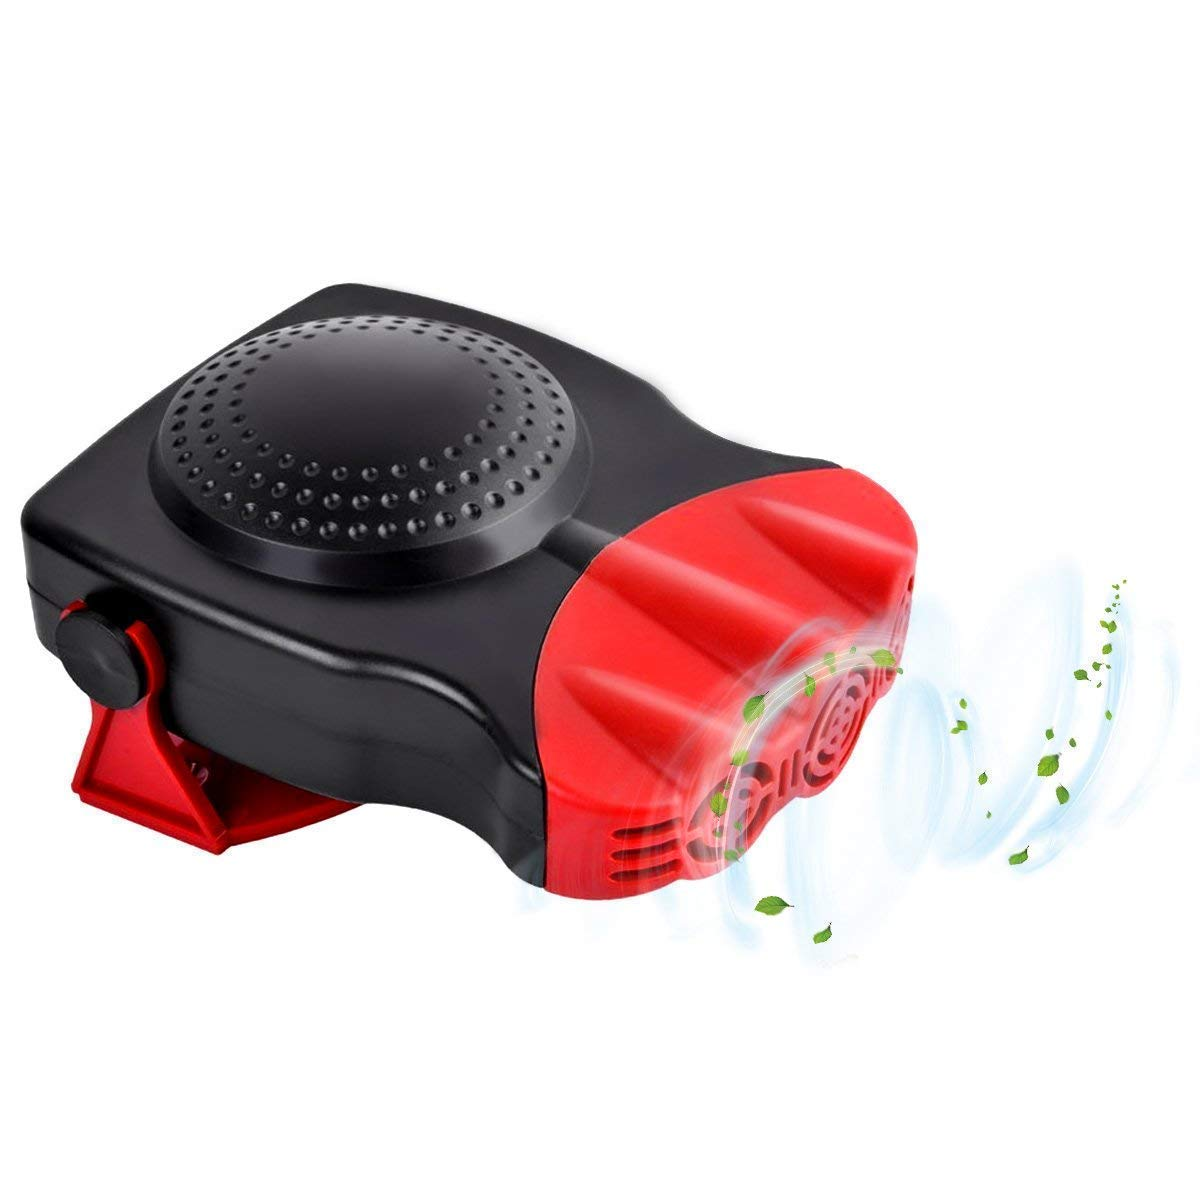 Car Defogger, Car Defroster, Car Heater, Windshield Defroster That Plugs into Cigarette Lighter, Can Heat Rapidly in 30 Seconds, Defrost and Defog The Windshield, Suitable for General Types of Cars by STYLOOC